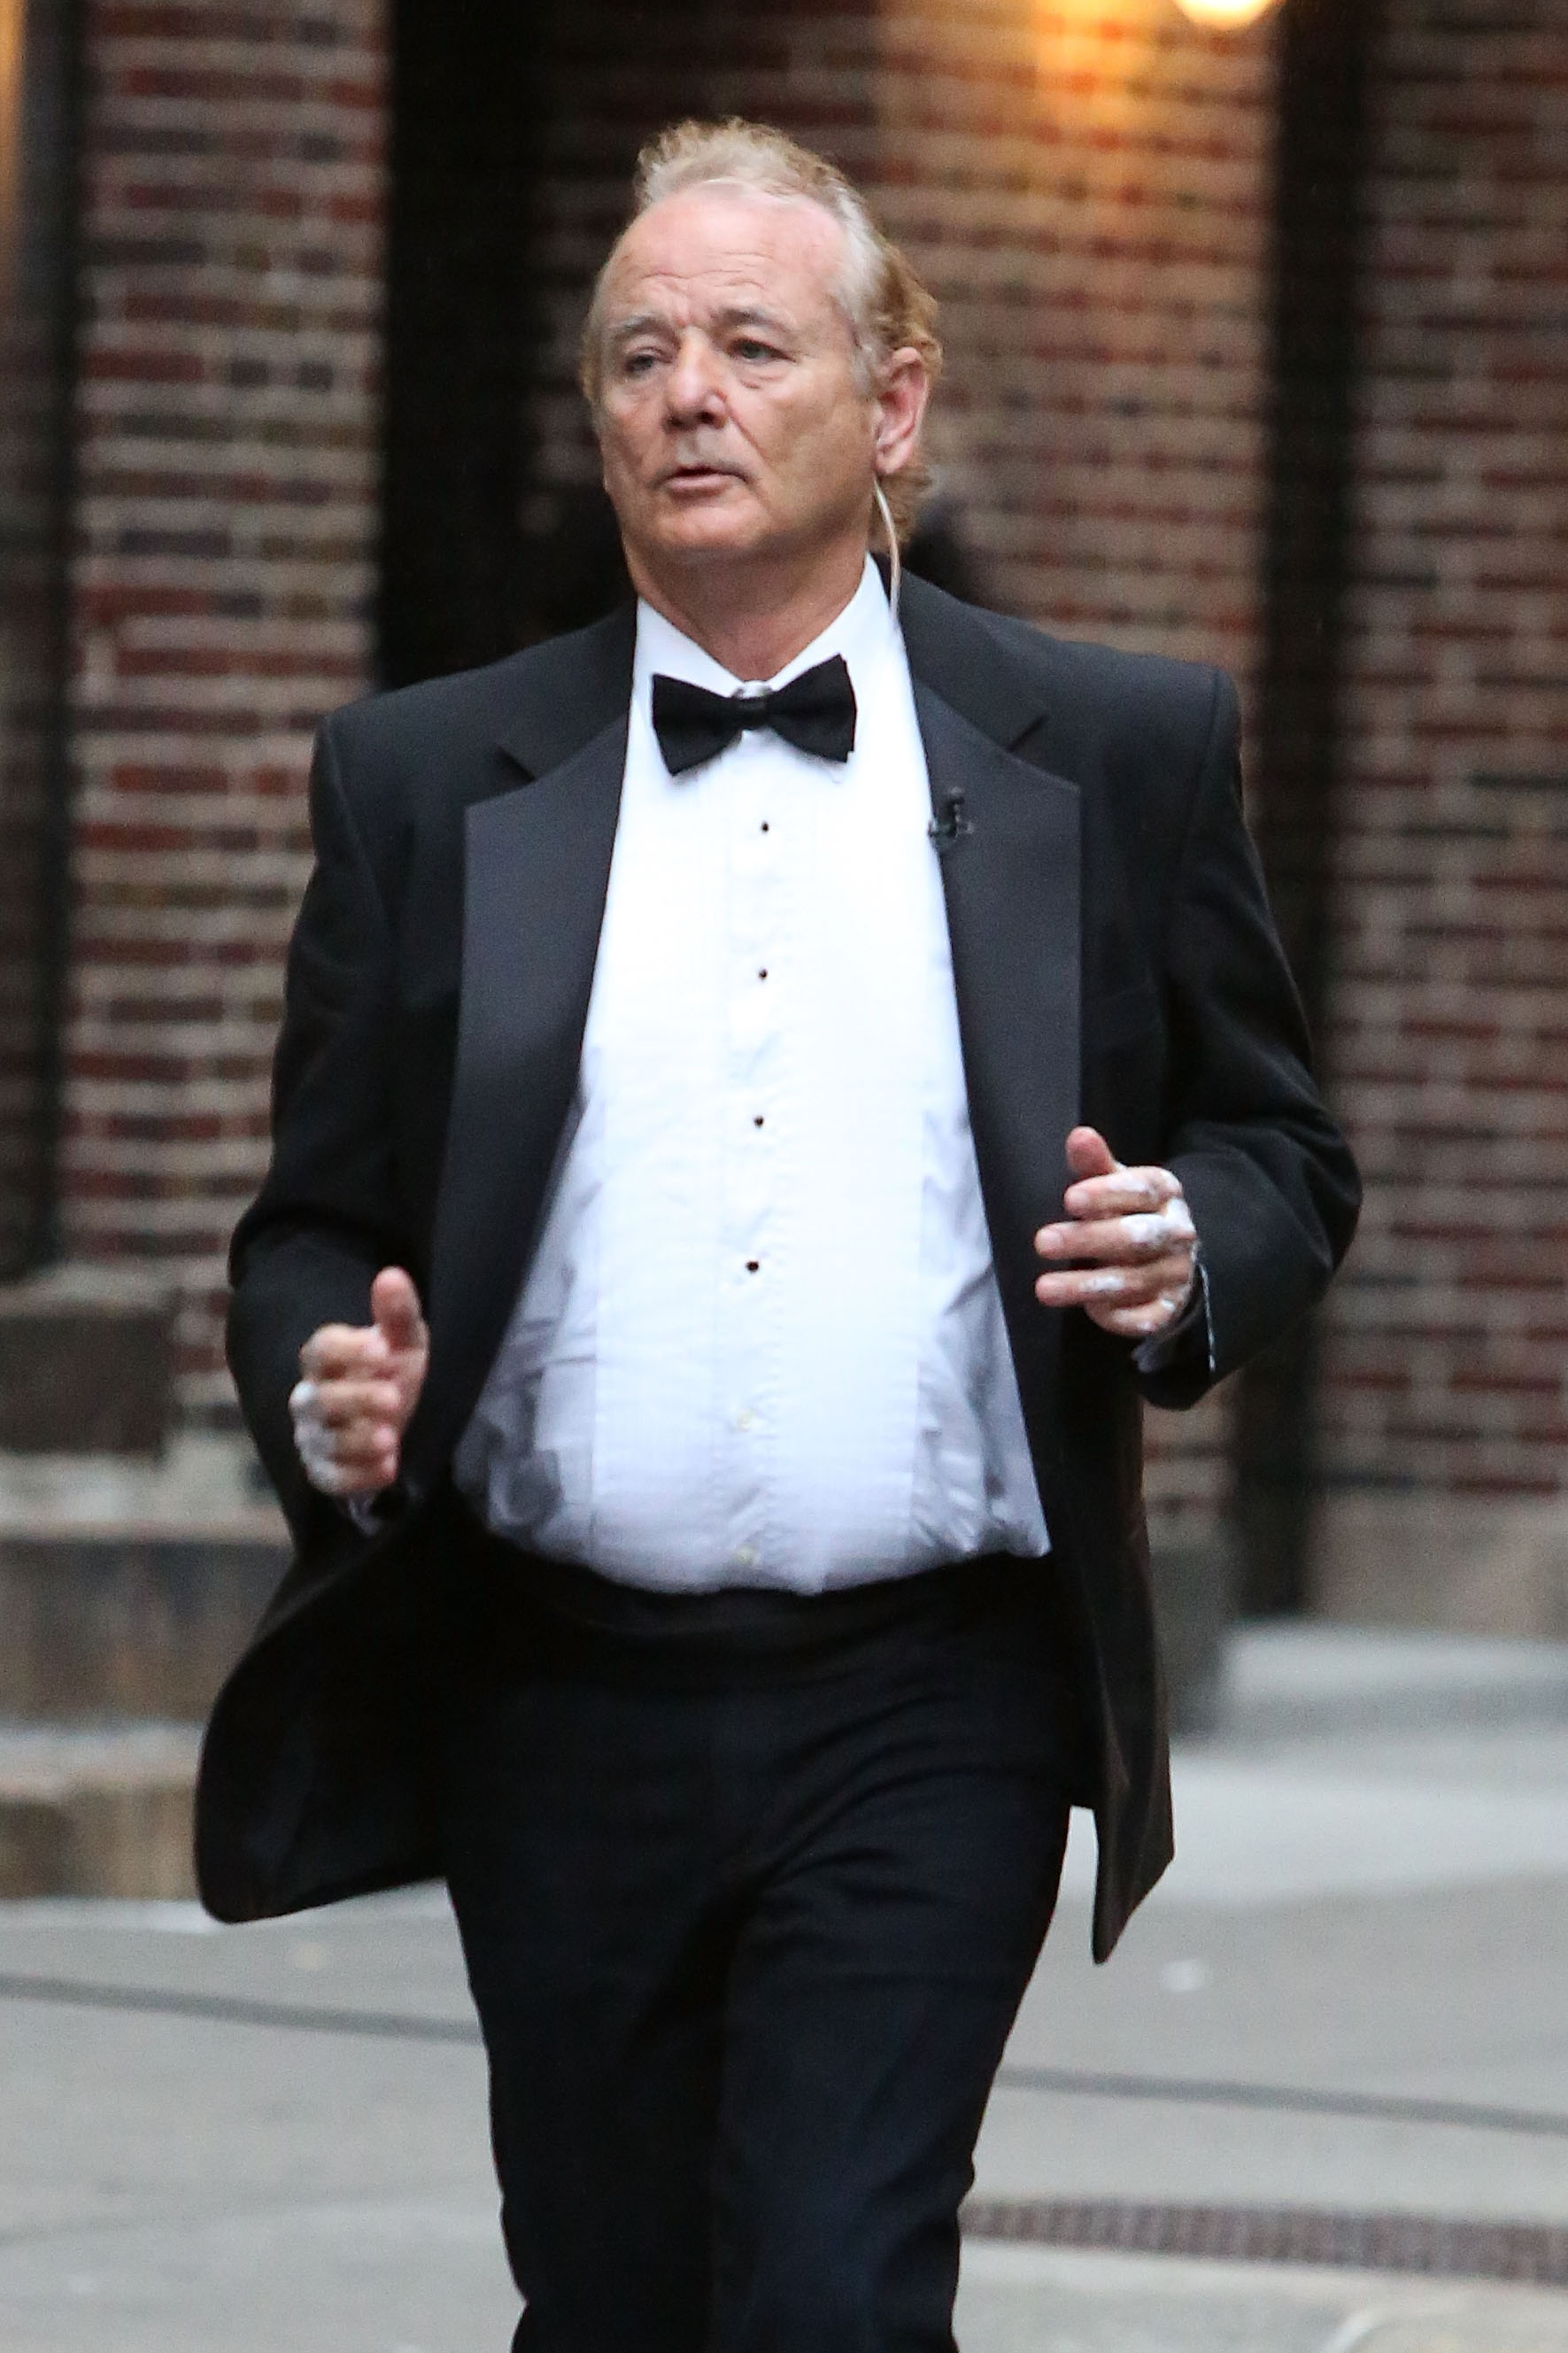 Actor Bill Murray goes jogging in black tie outside of  Late Show with David Letterman  on October 15, 2014 in New York City.